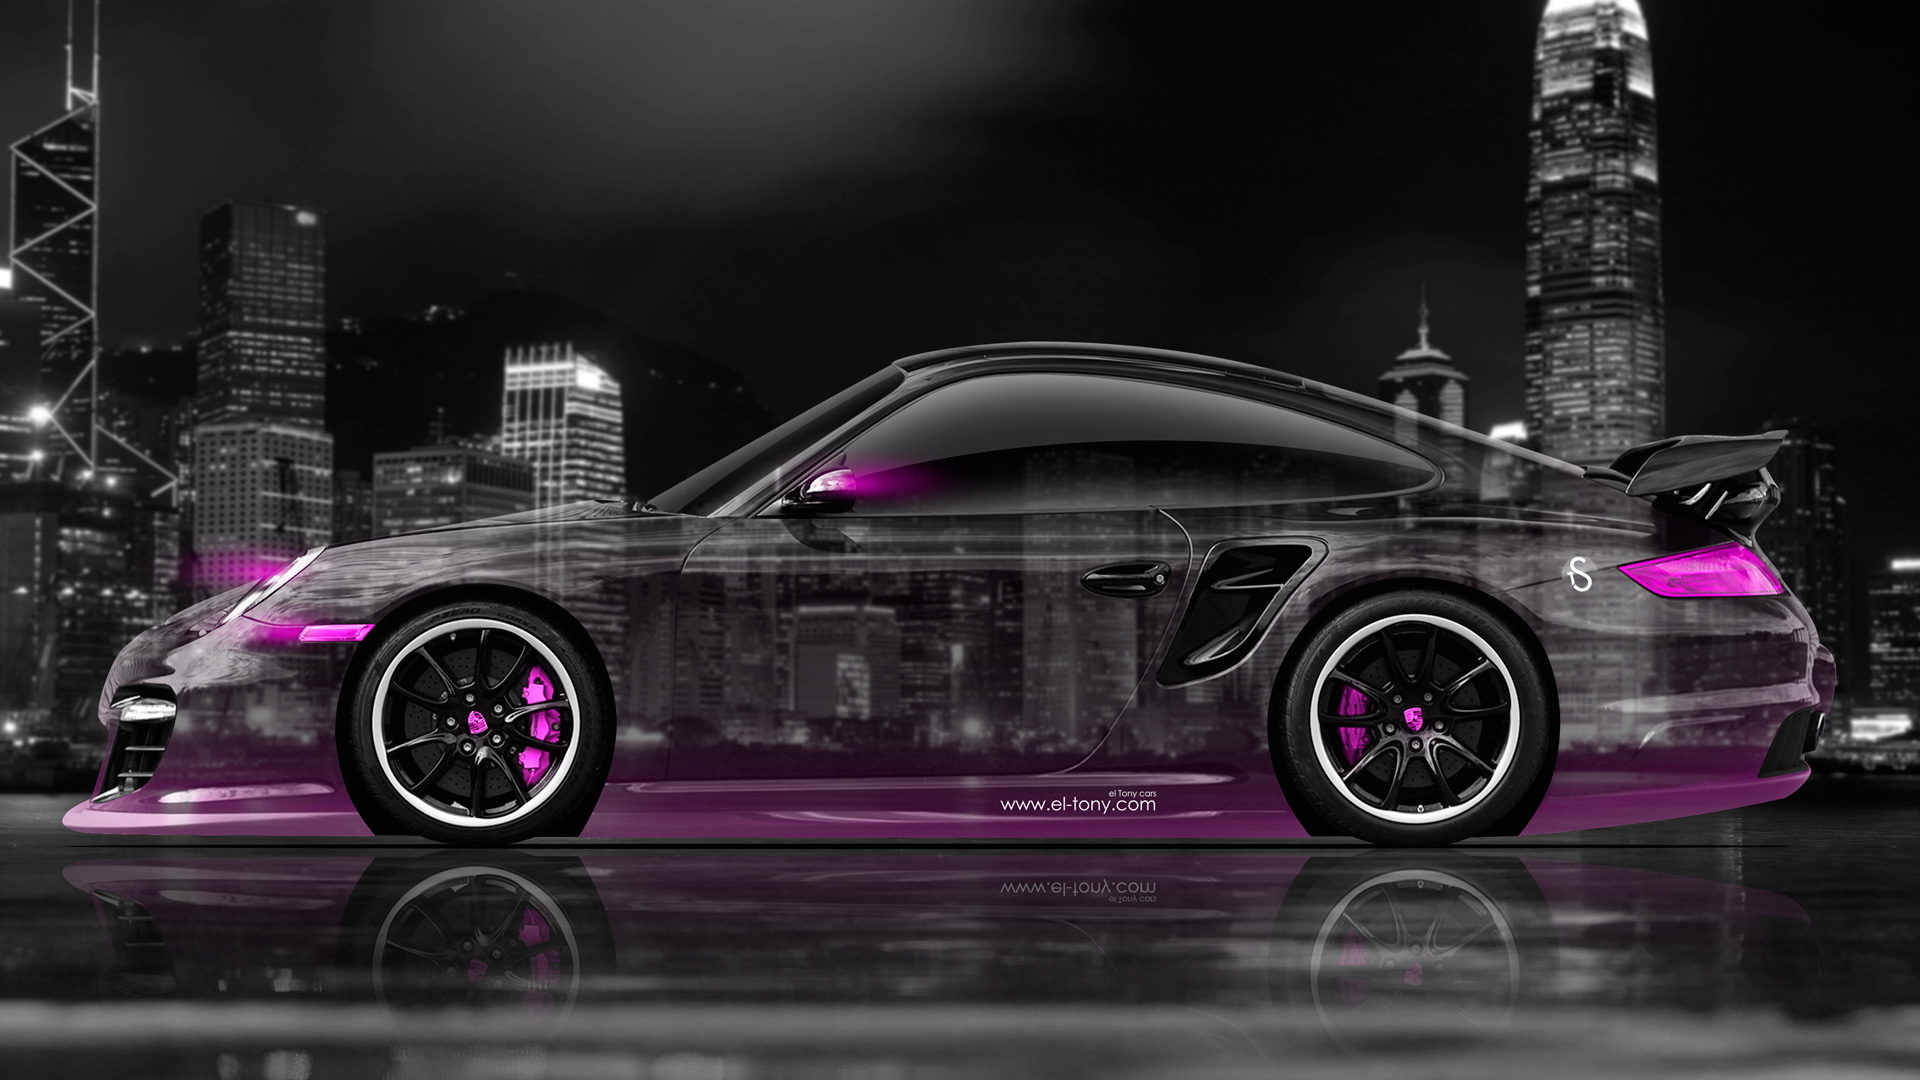 Wallpapers Porsche 911 Gt2 Side Crystal City Car 2014